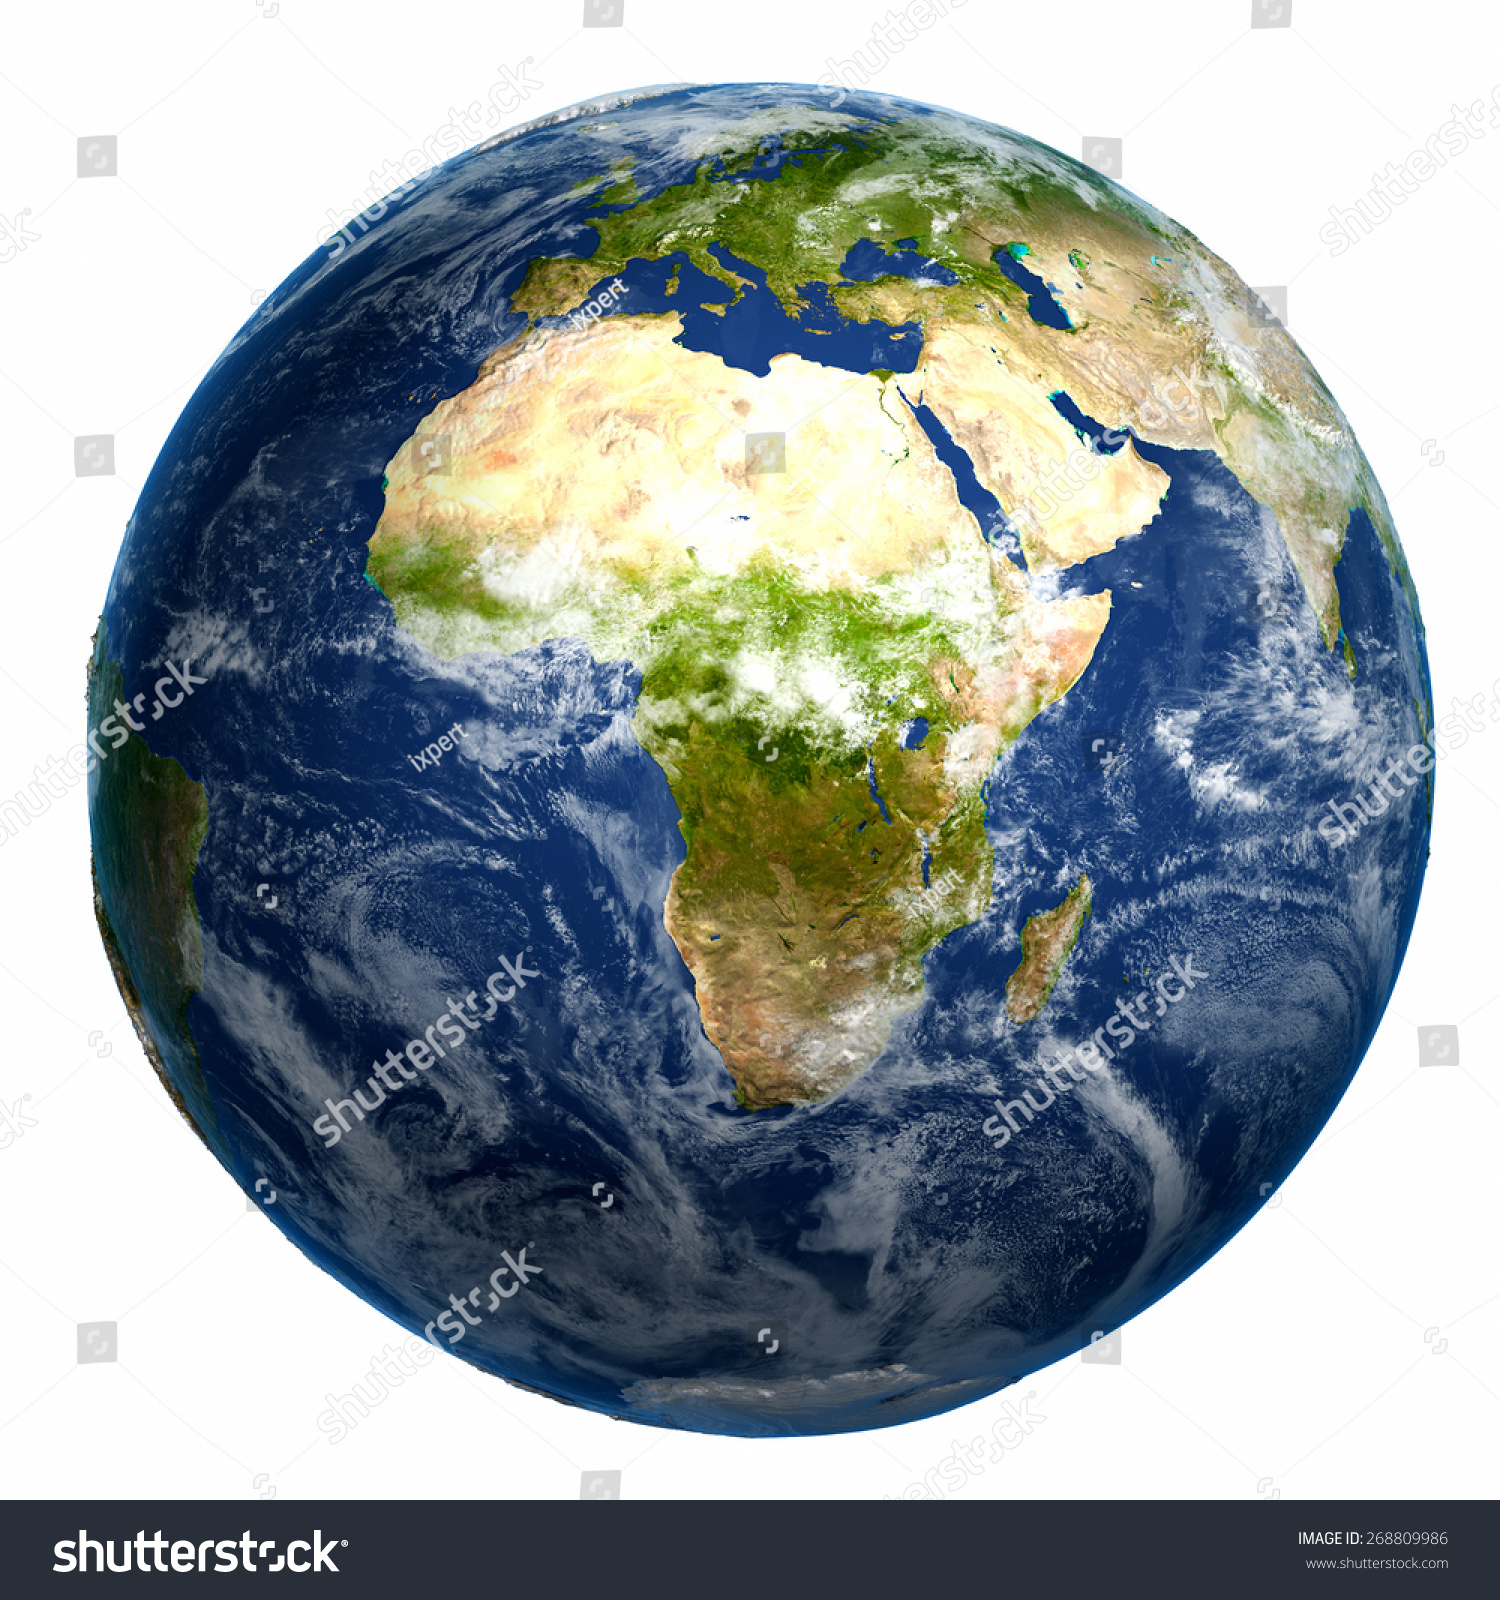 Earth Globe Map Elements This Image Stock Illustration - Earth globe map